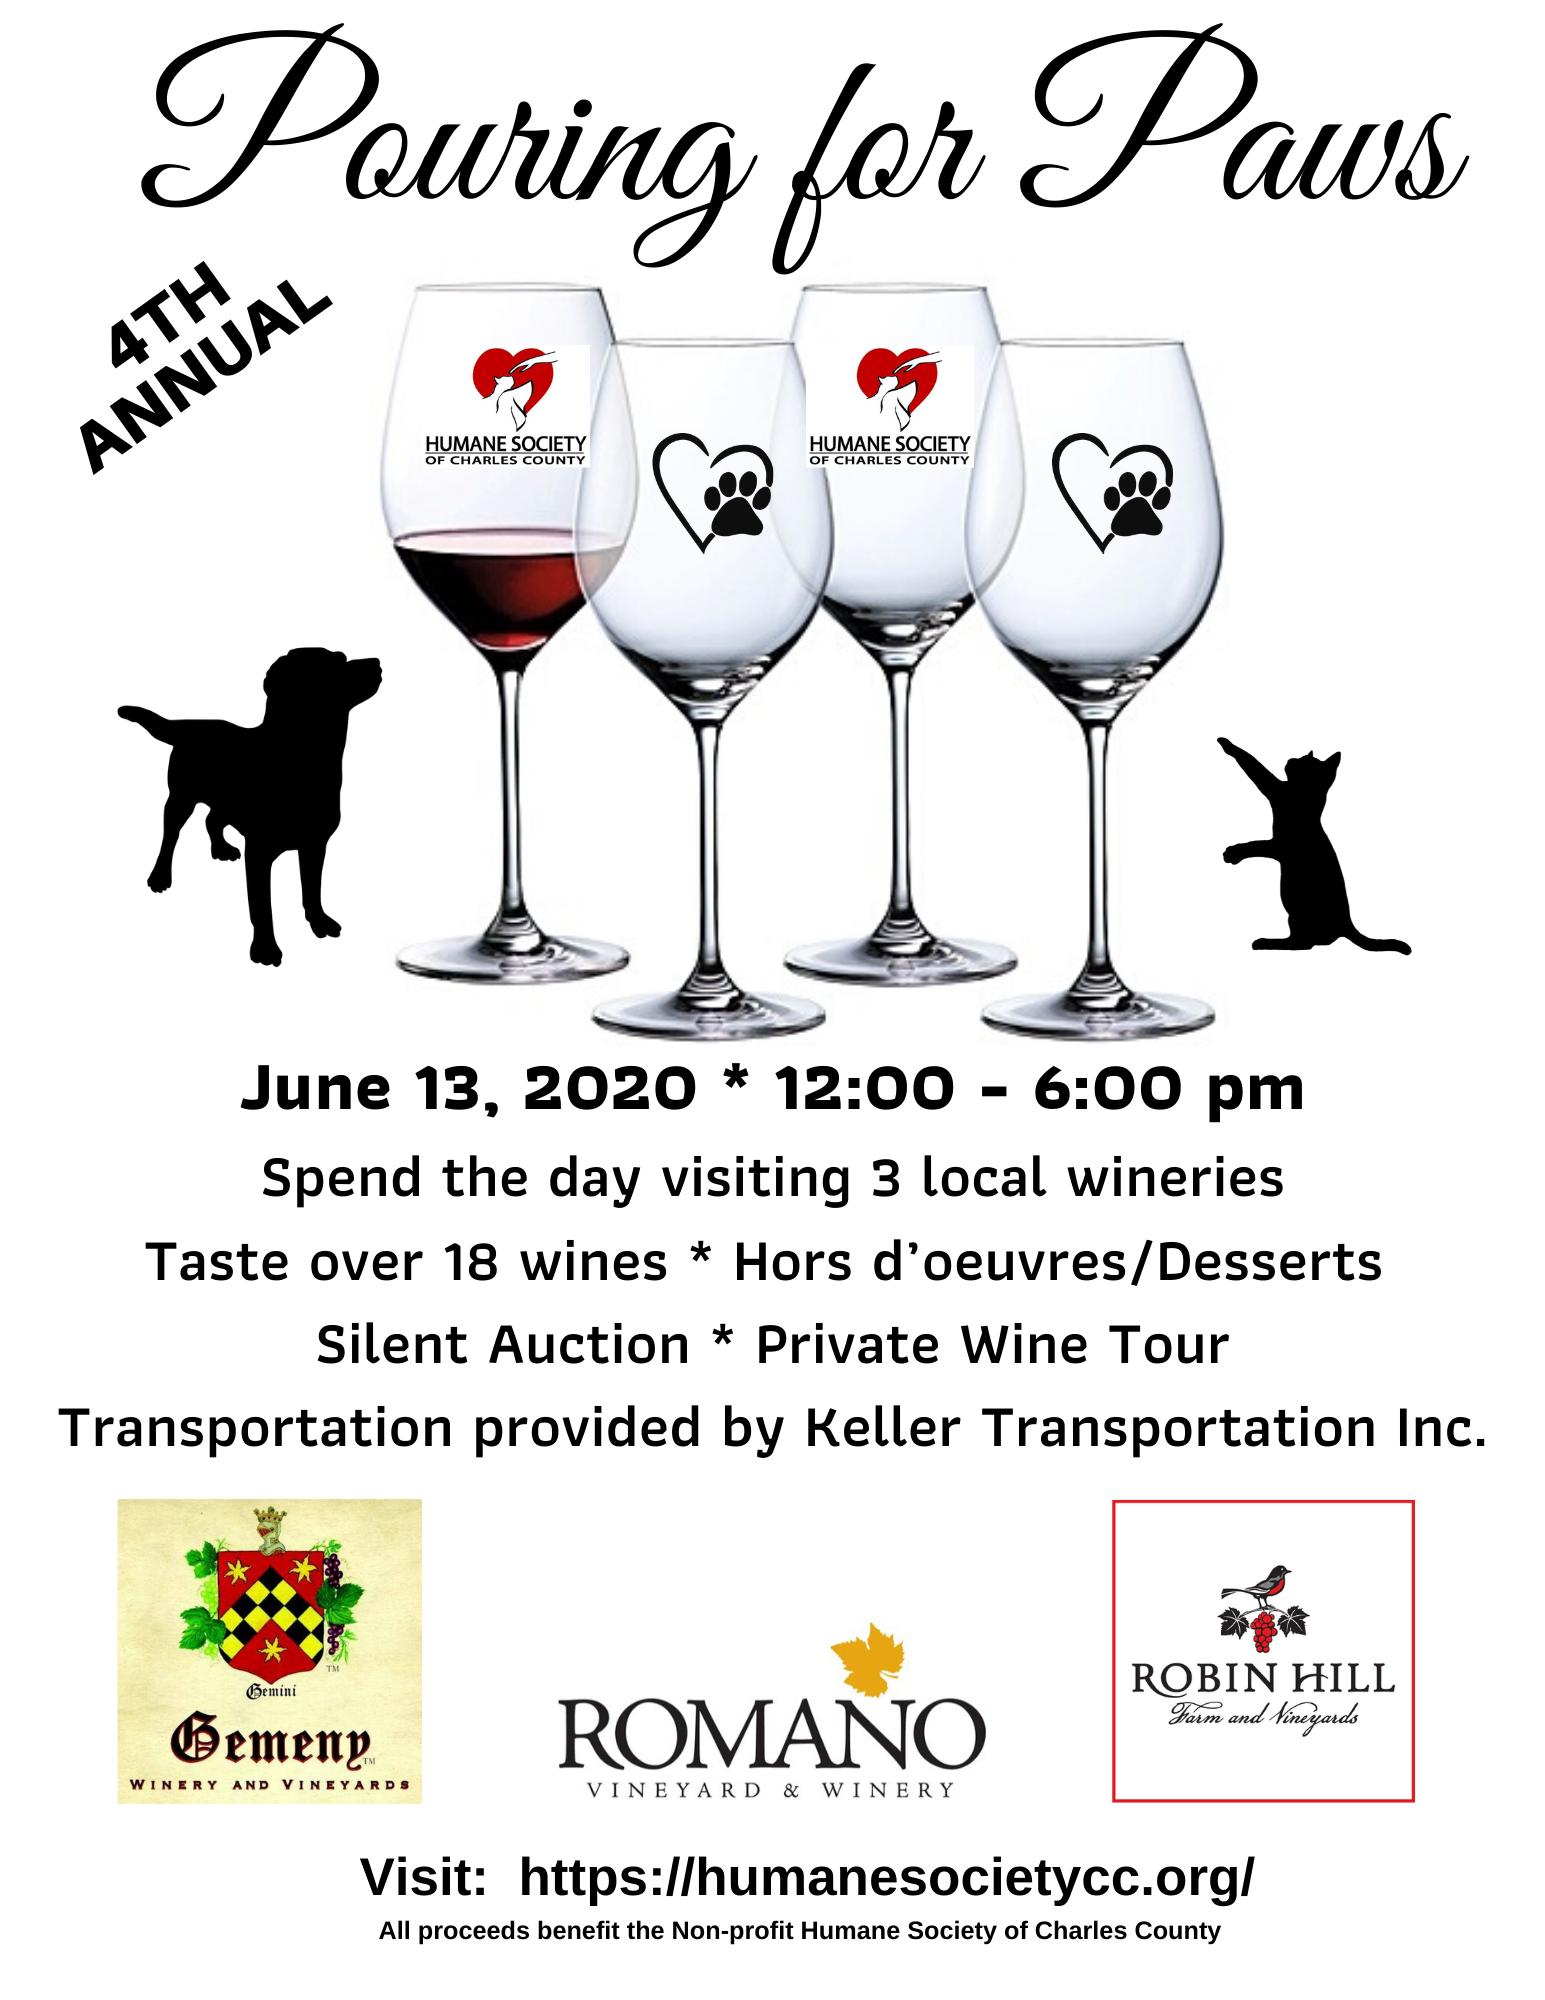 4th Annual Pouring for Paws Wine Tasting Tour image